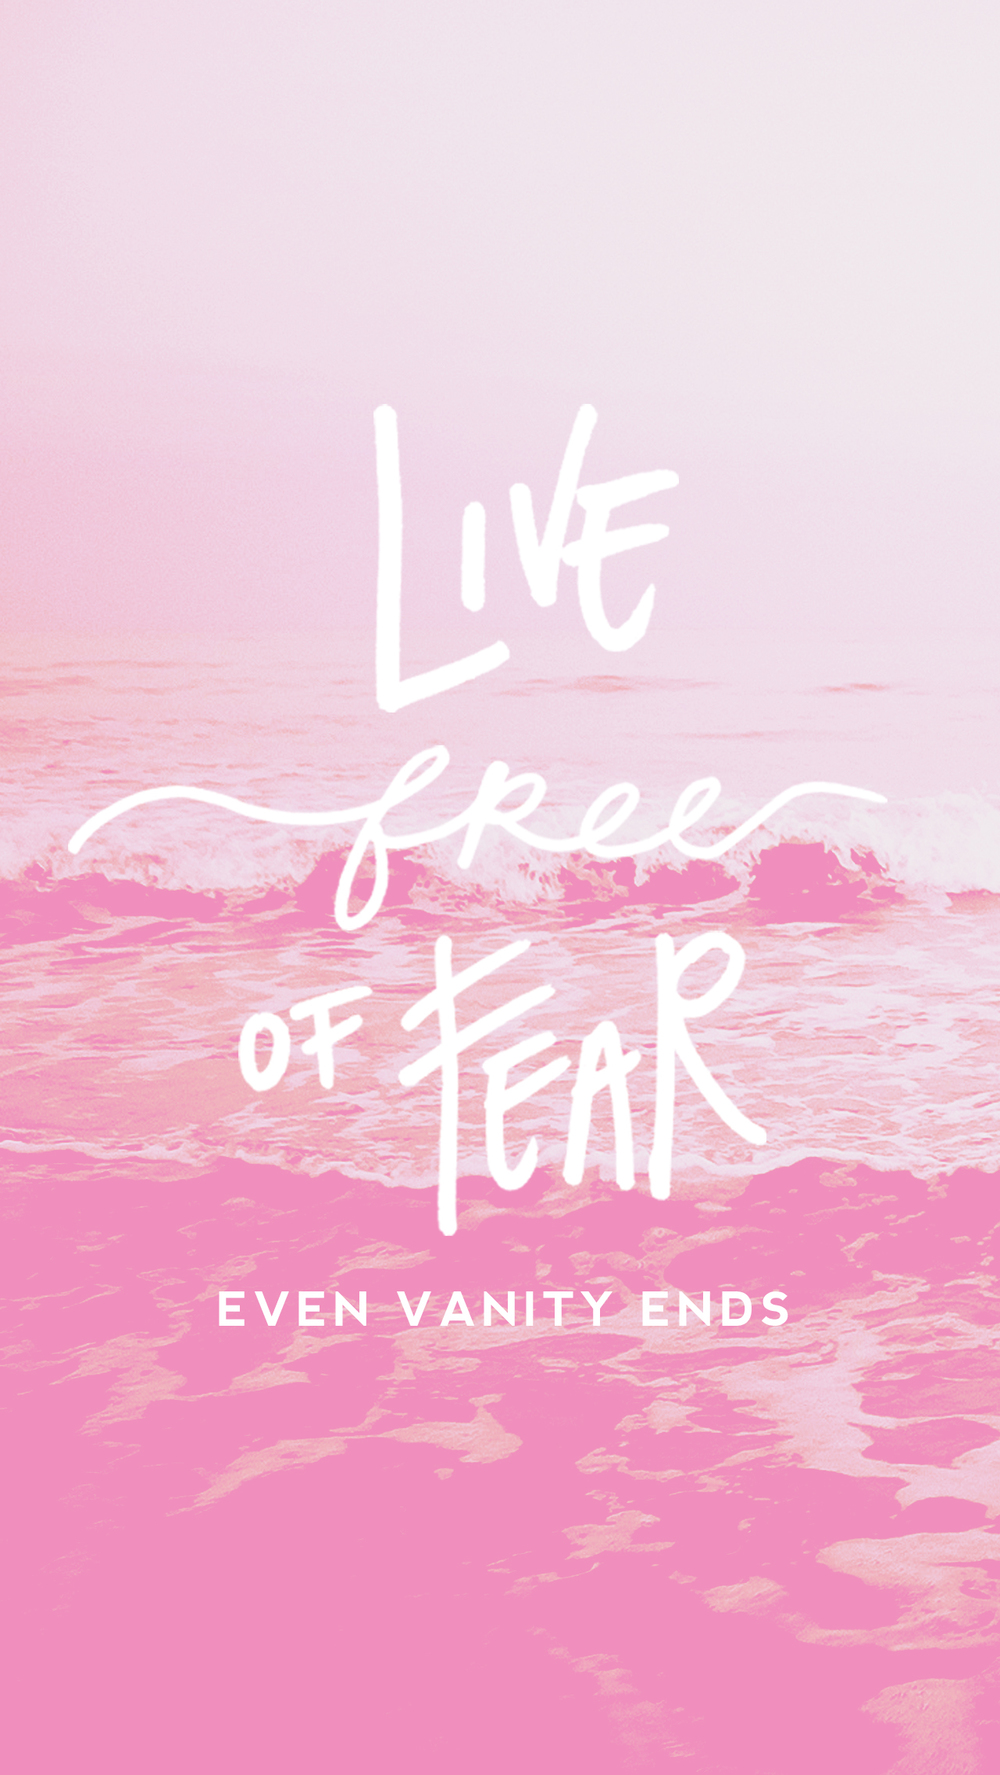 even-vanity-ends-live-free-of-fear-phone-wallpaper-pink.jpg